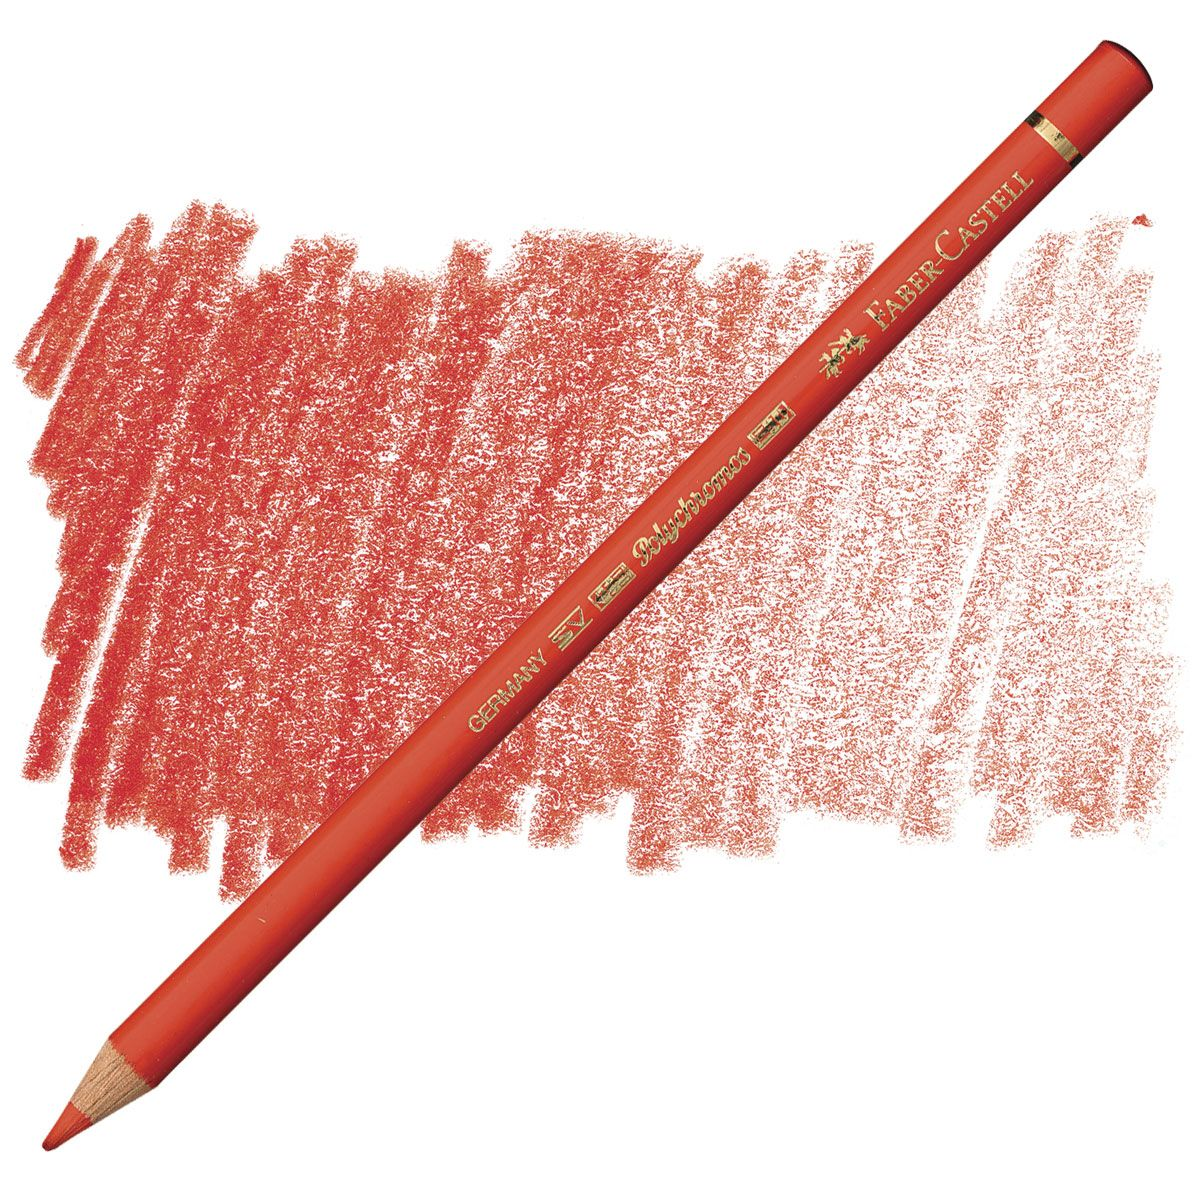 Faber Castell Polychromos Pencil Indian Red